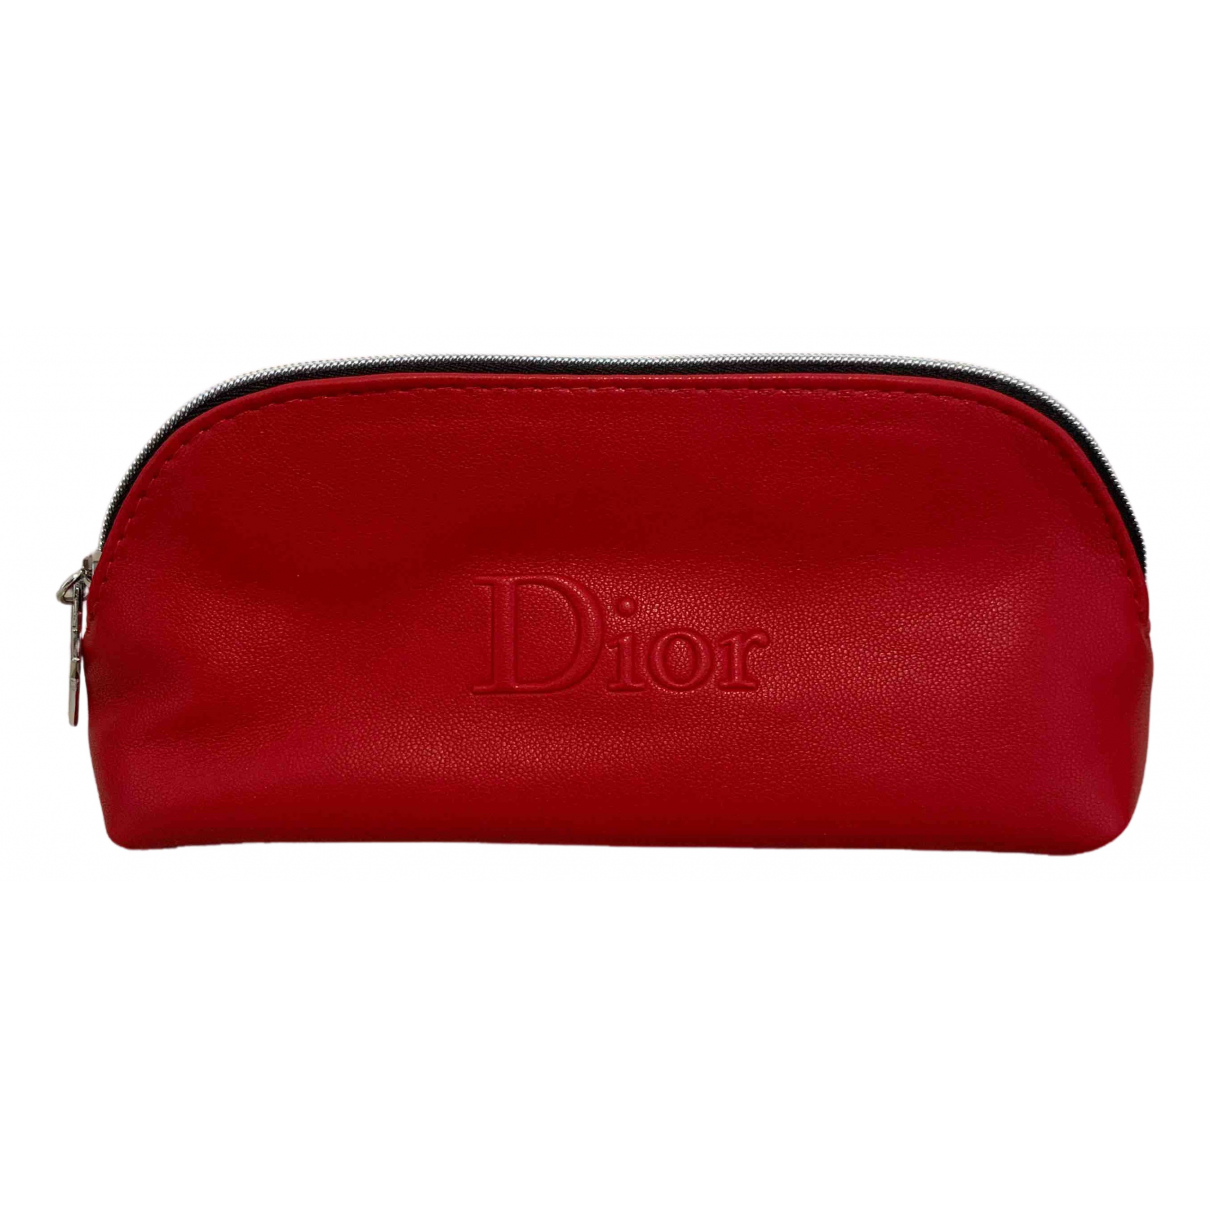 Dior \N Red Travel bag for Women \N